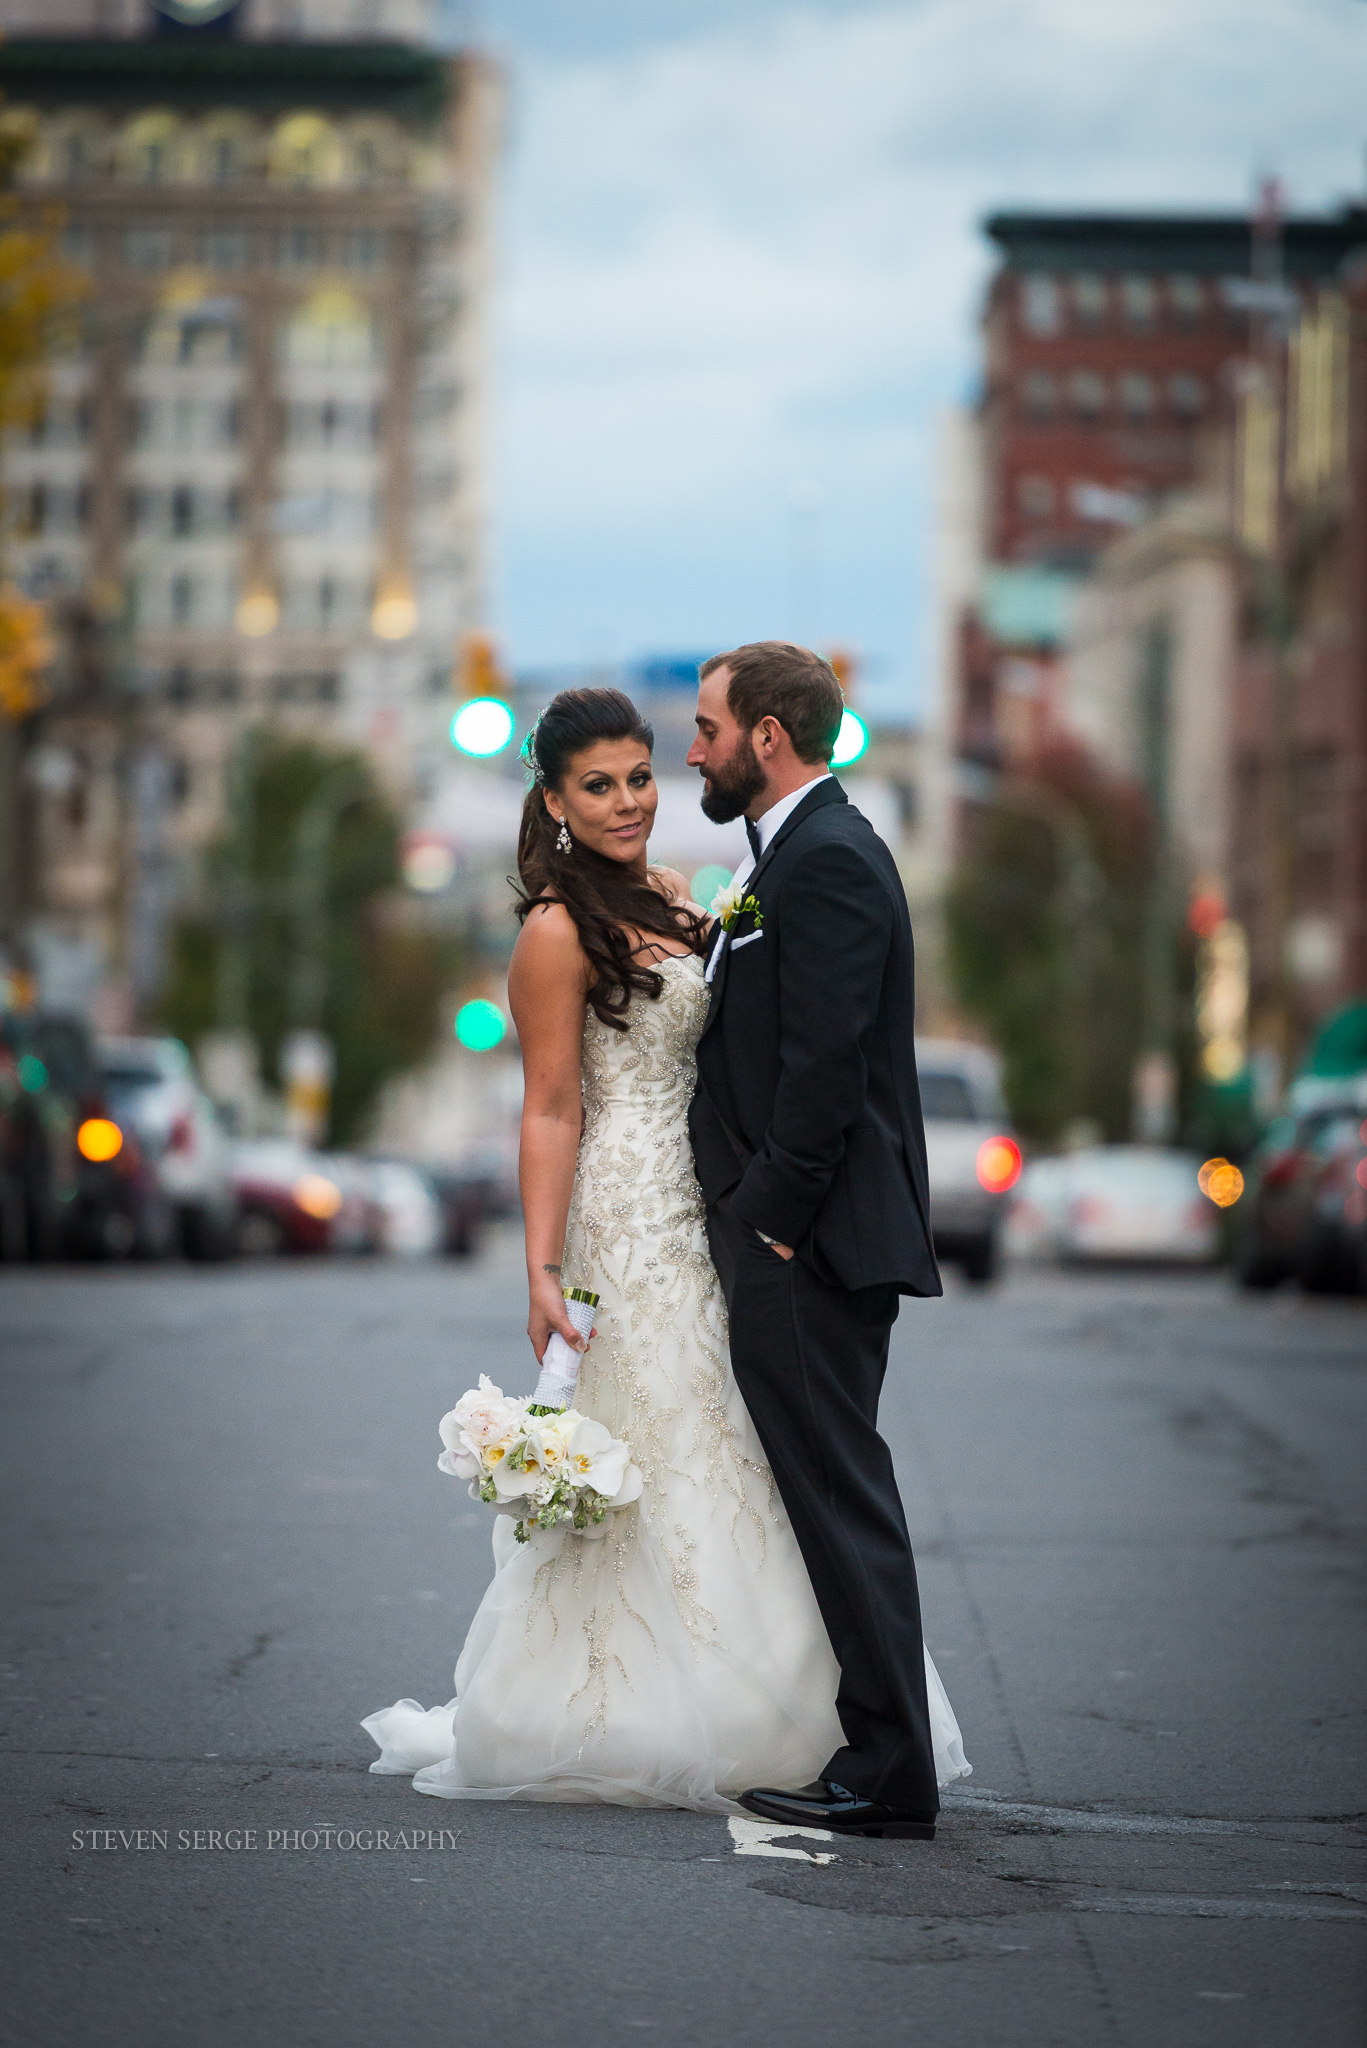 Bride and Groom Wedding Fashion in Scranton